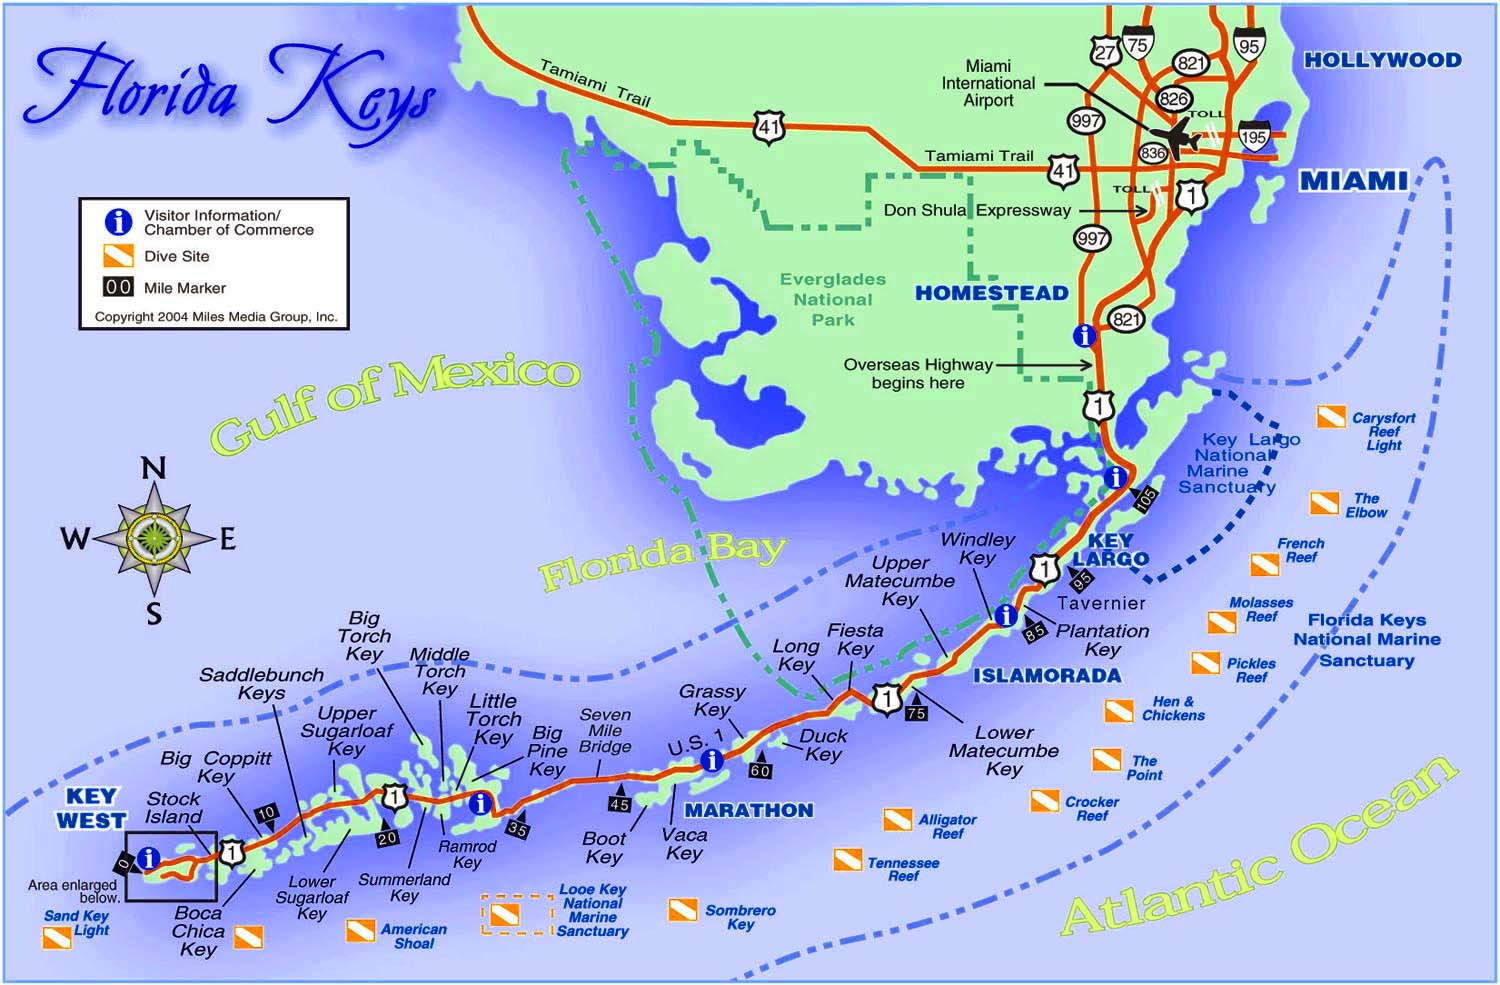 Best Florida Keys Beaches Map And Information - Florida Keys - Florida Keys Map With Mile Markers